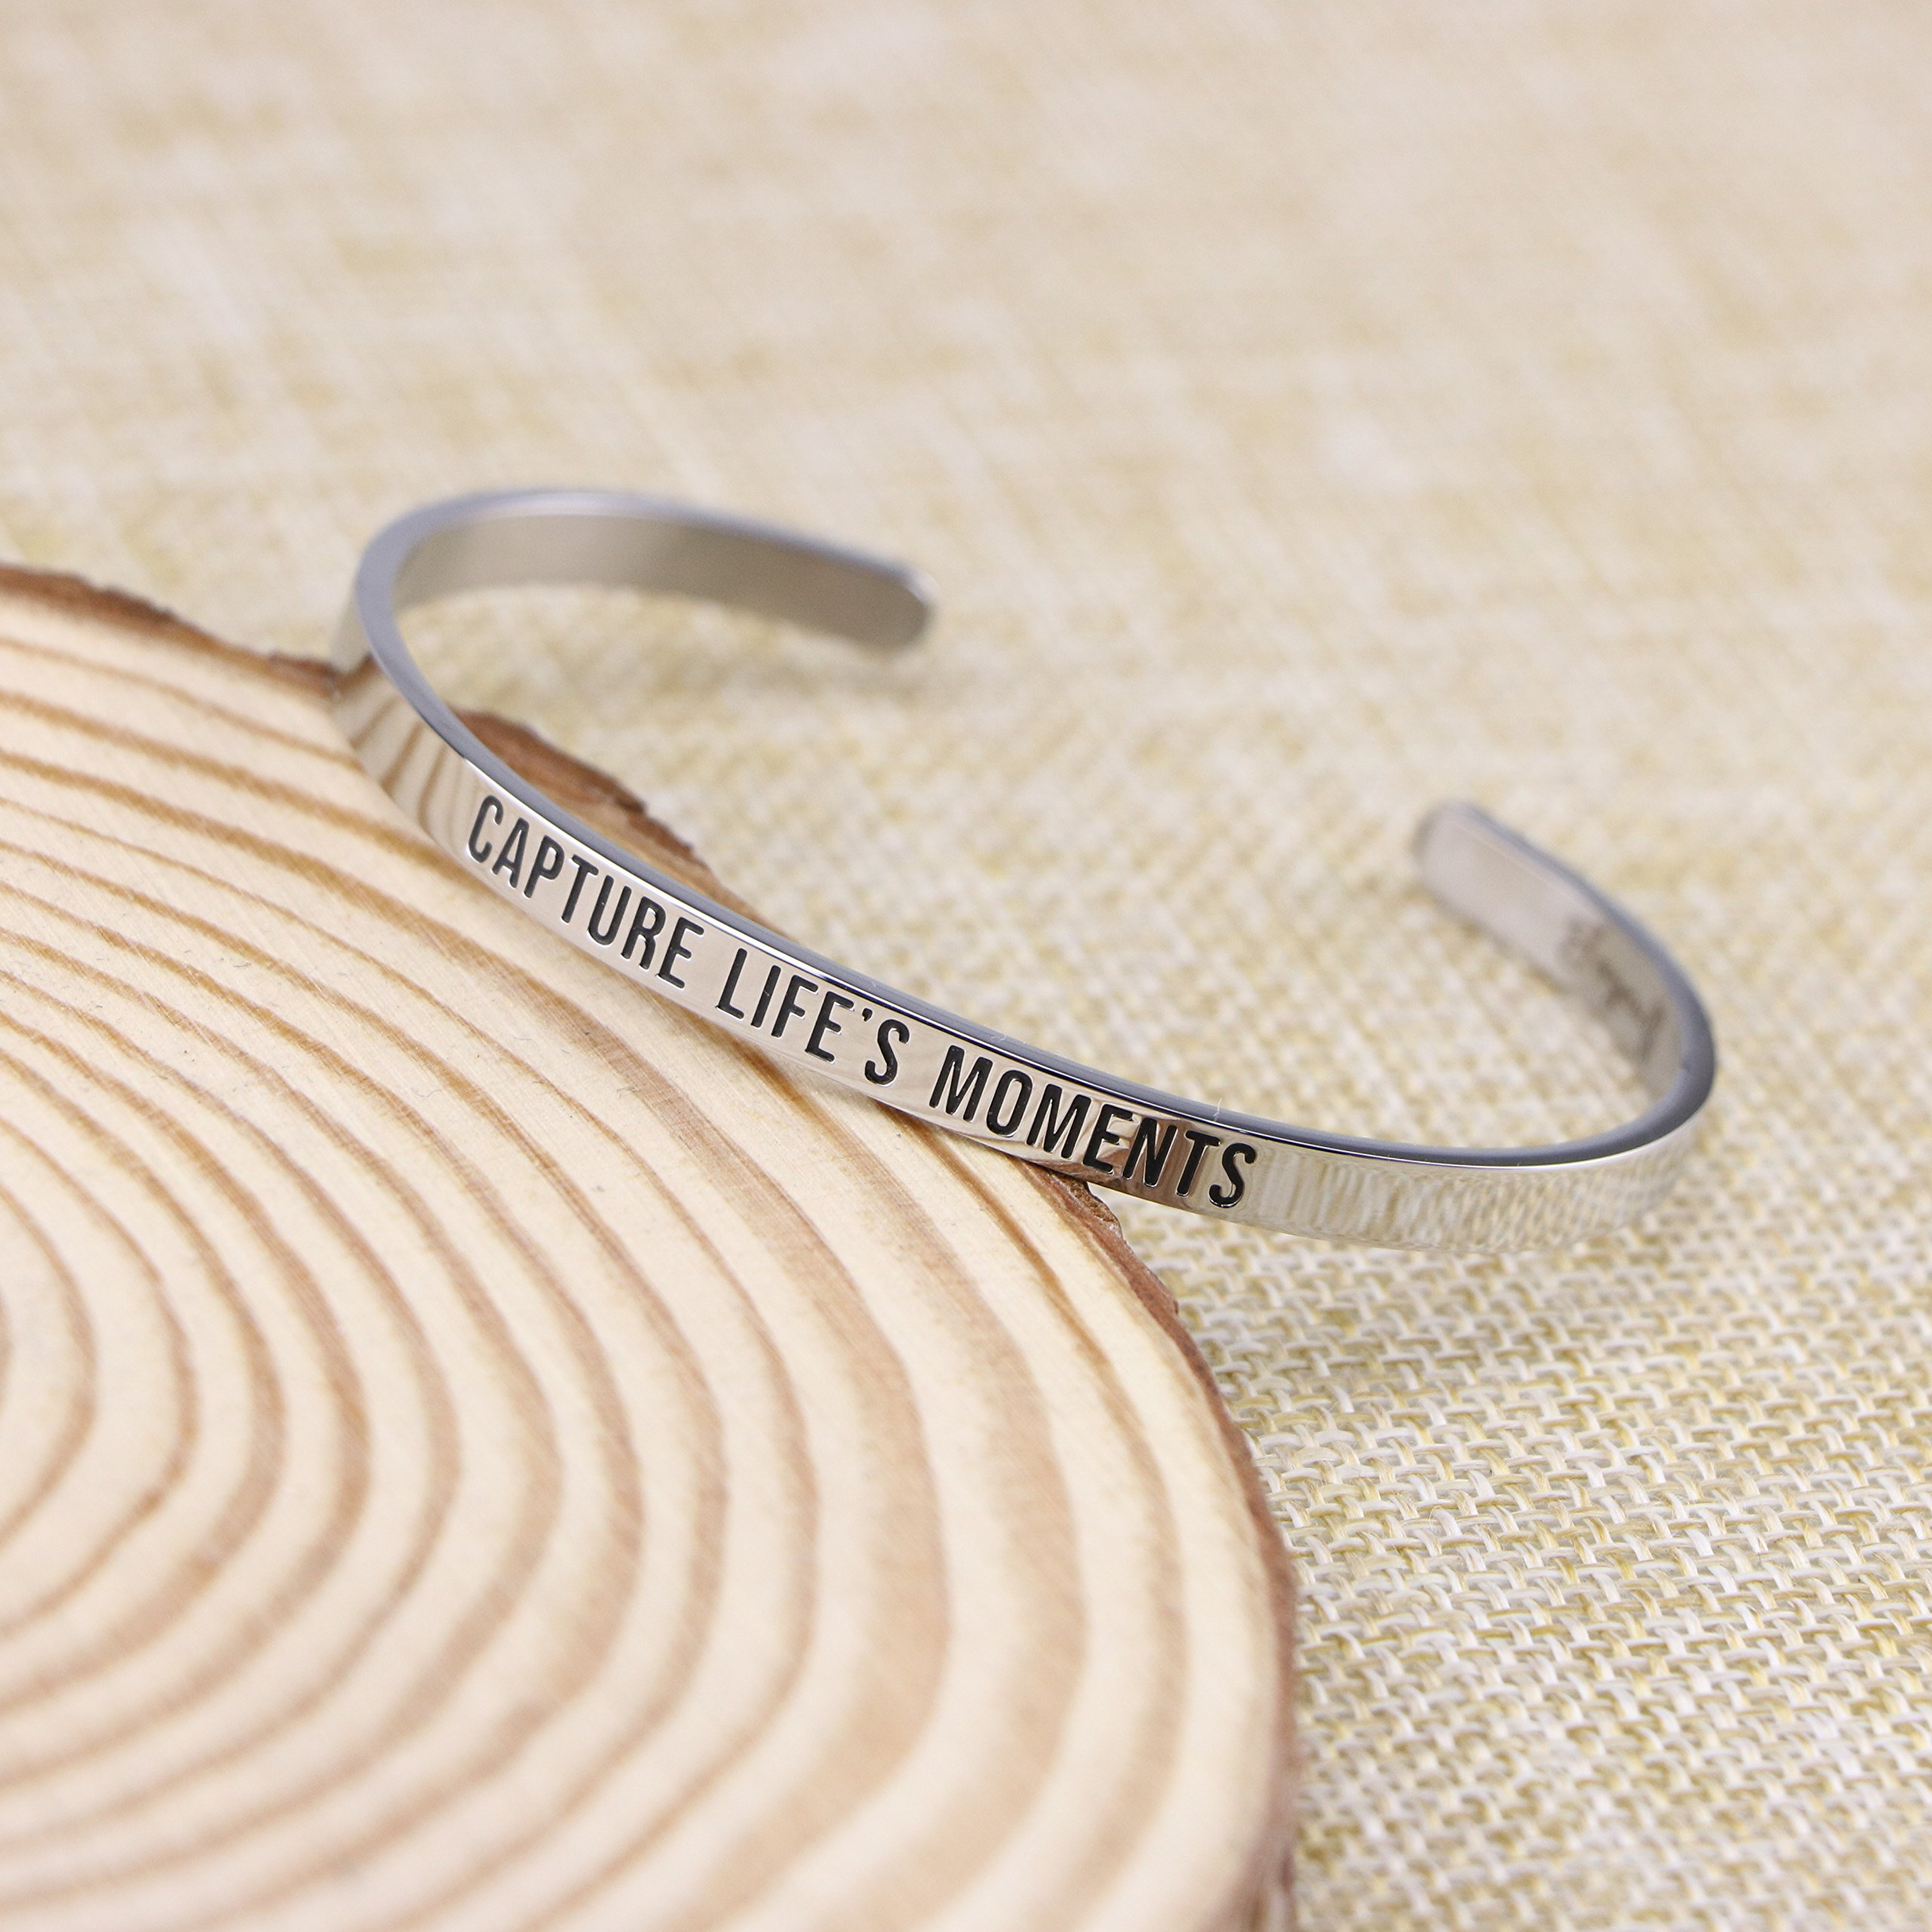 Joycuff New Mom Gift Mantra Cuff Bracelets Photographer Travel Jewelry Capture life's moments by Joycuff (Image #3)